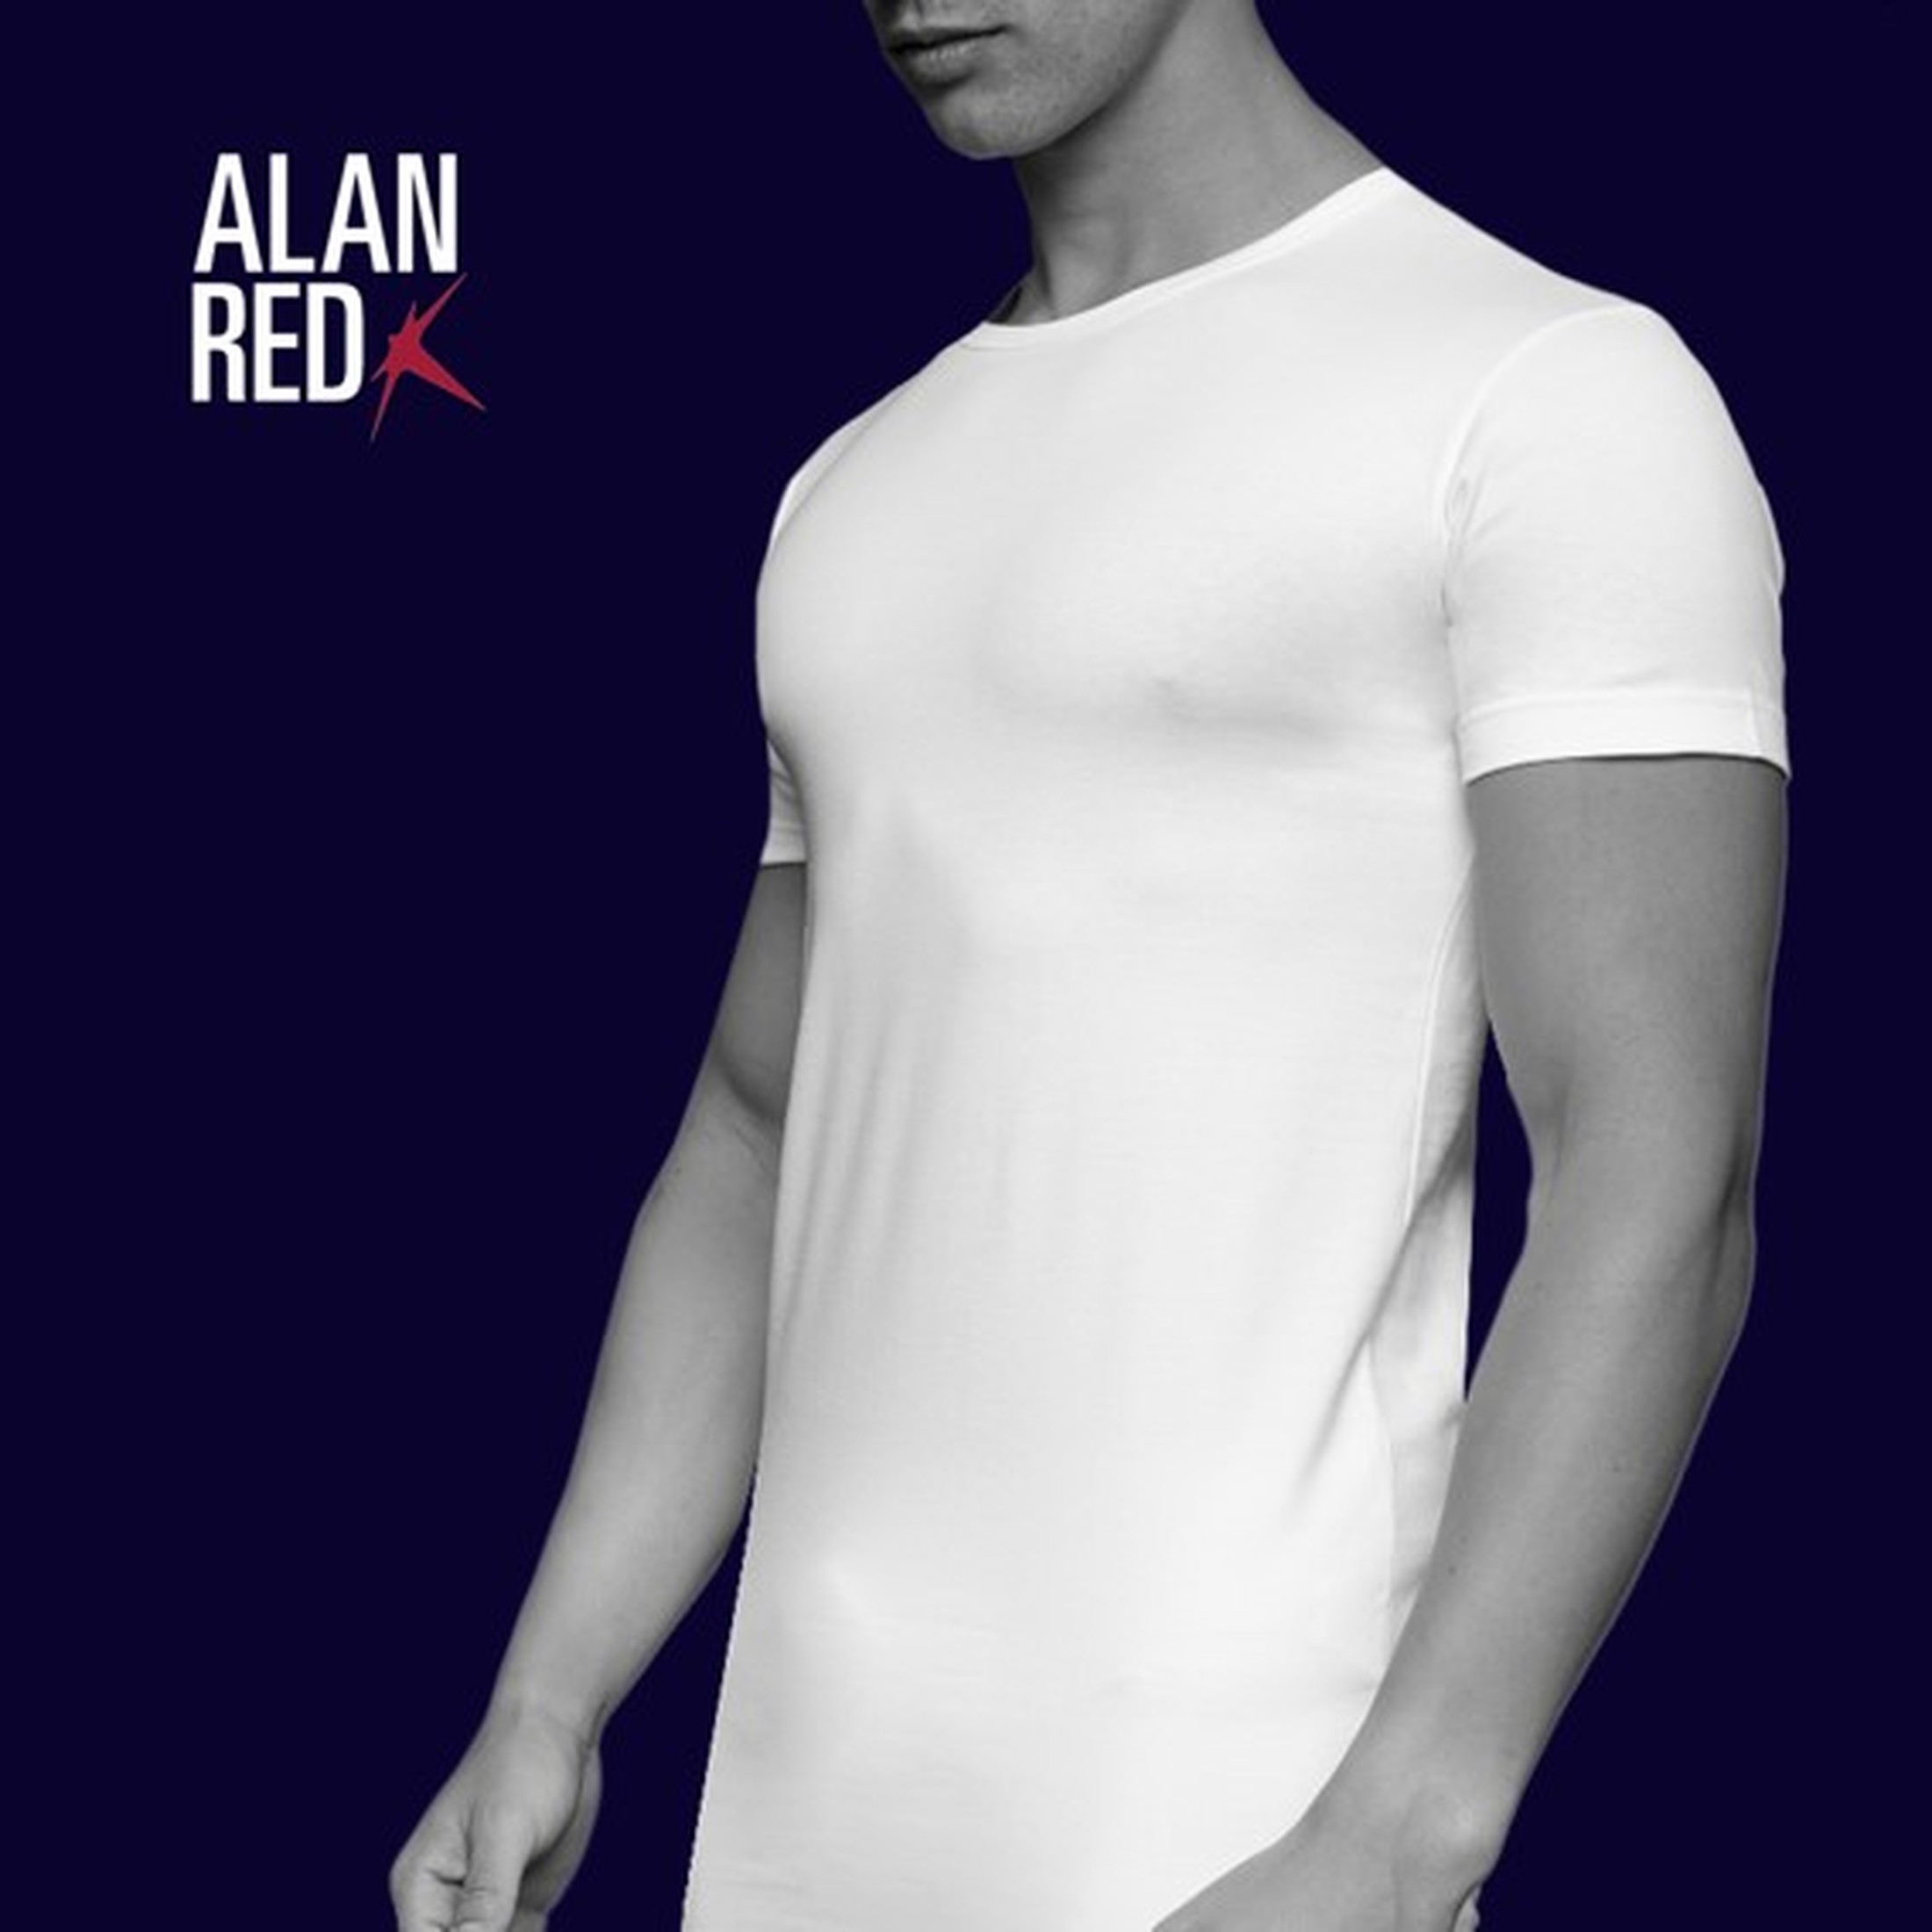 Alan Red Ottawa T-shirt Stretch Wit (2Pack)